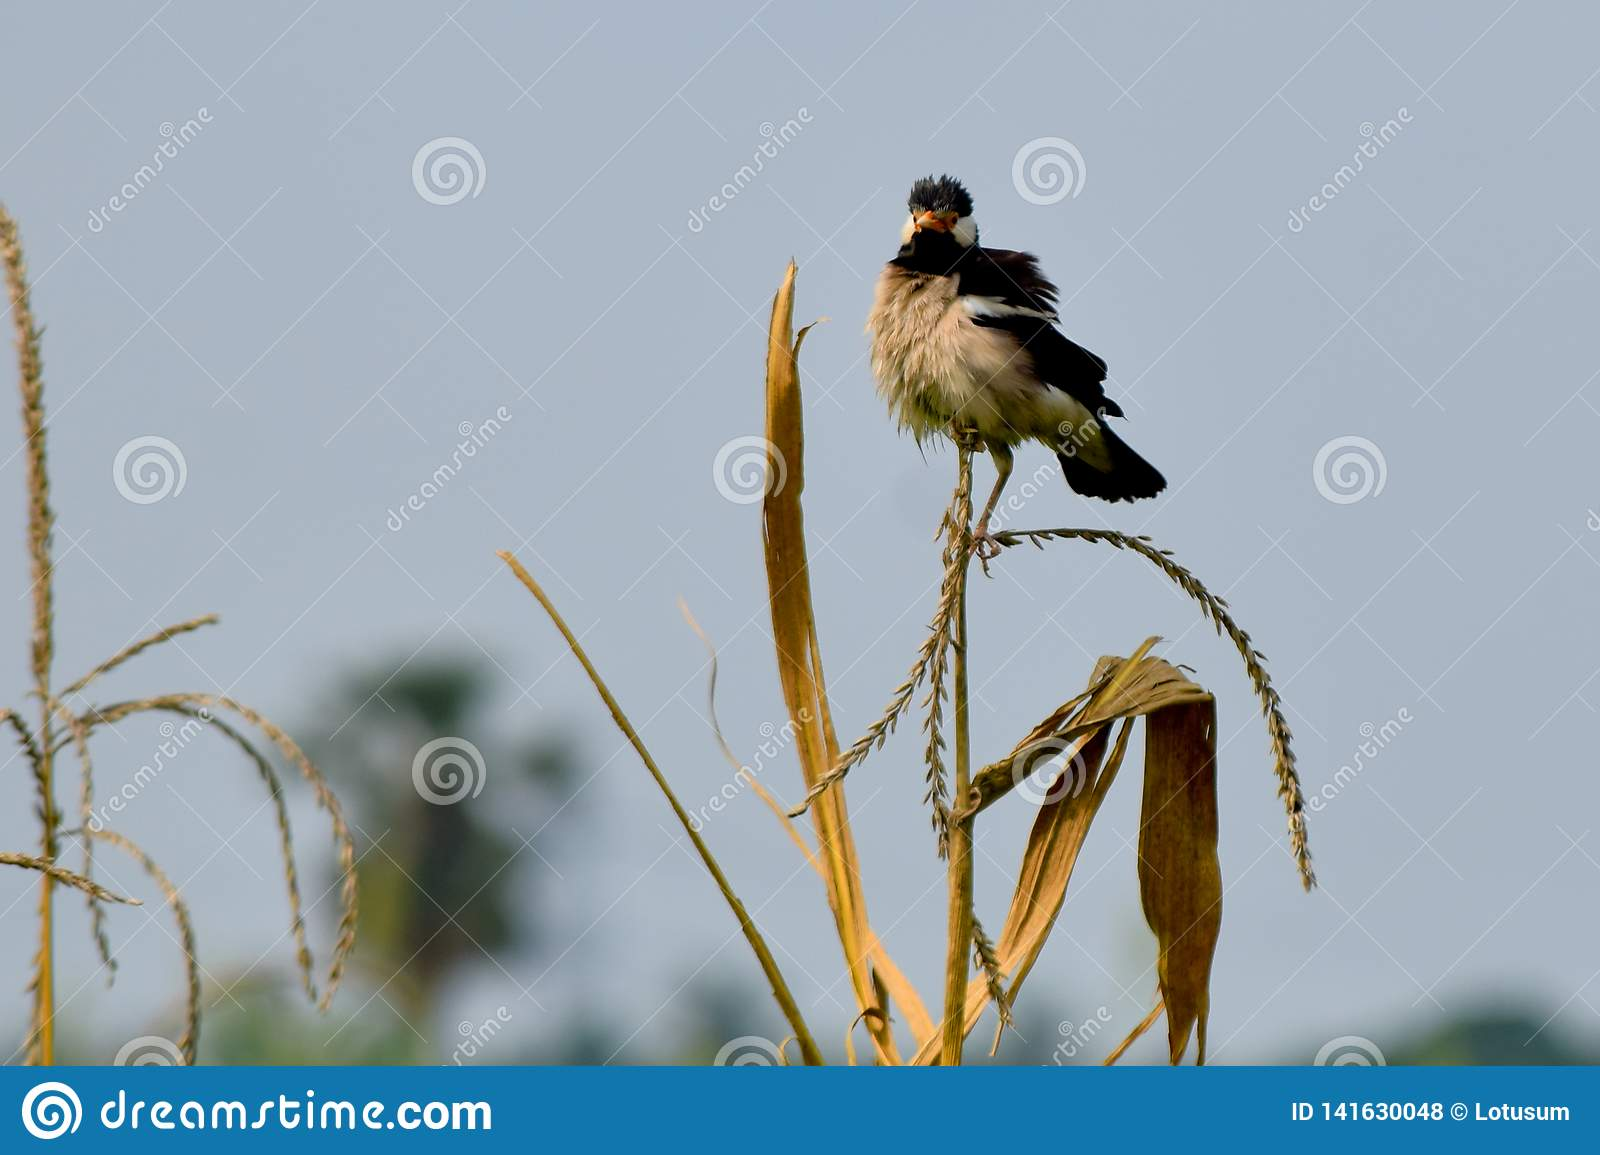 Indian mayna myna white and black angry bird